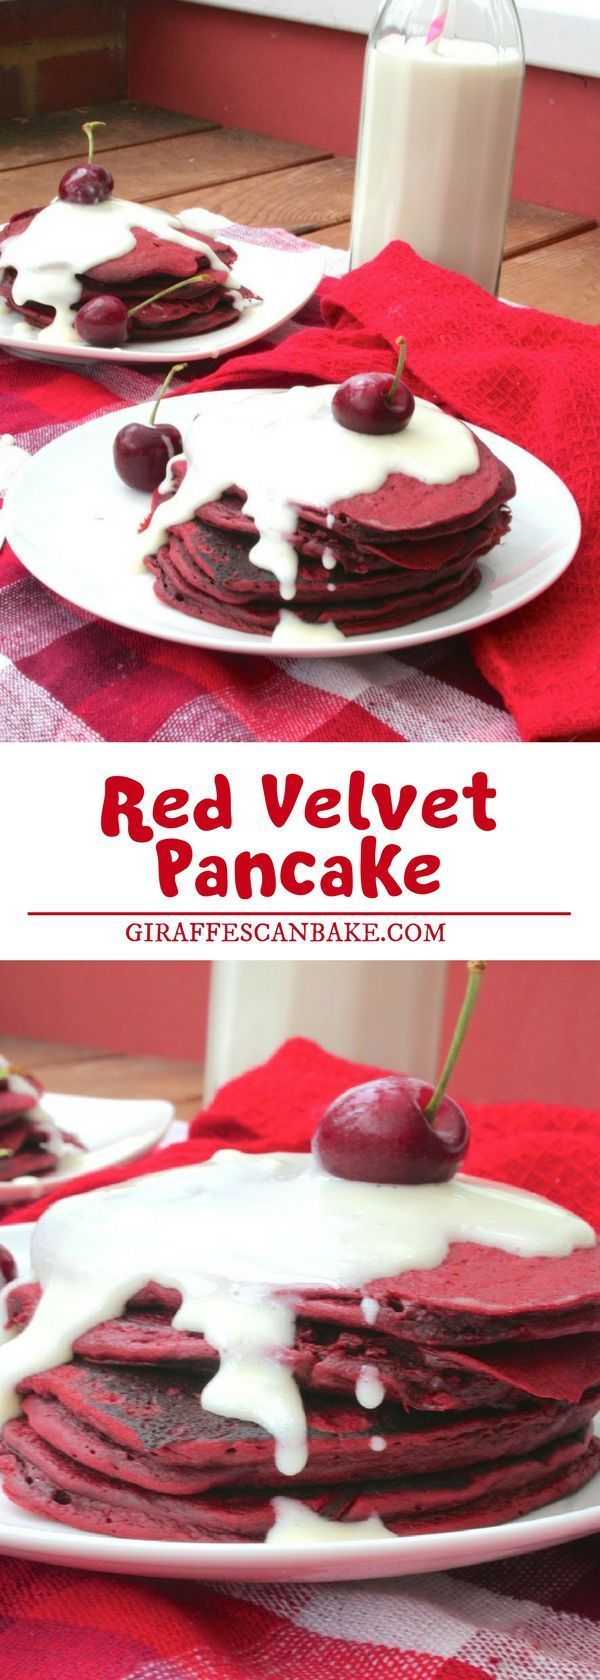 Have you thought about baking something easy, healthy, breakfast recipe ideas like pancake for Valentine's Day? And what better way to celebrate than with red velvet pancakes? They're full of love and yummy goodness! #pancake #breakfastrecipe